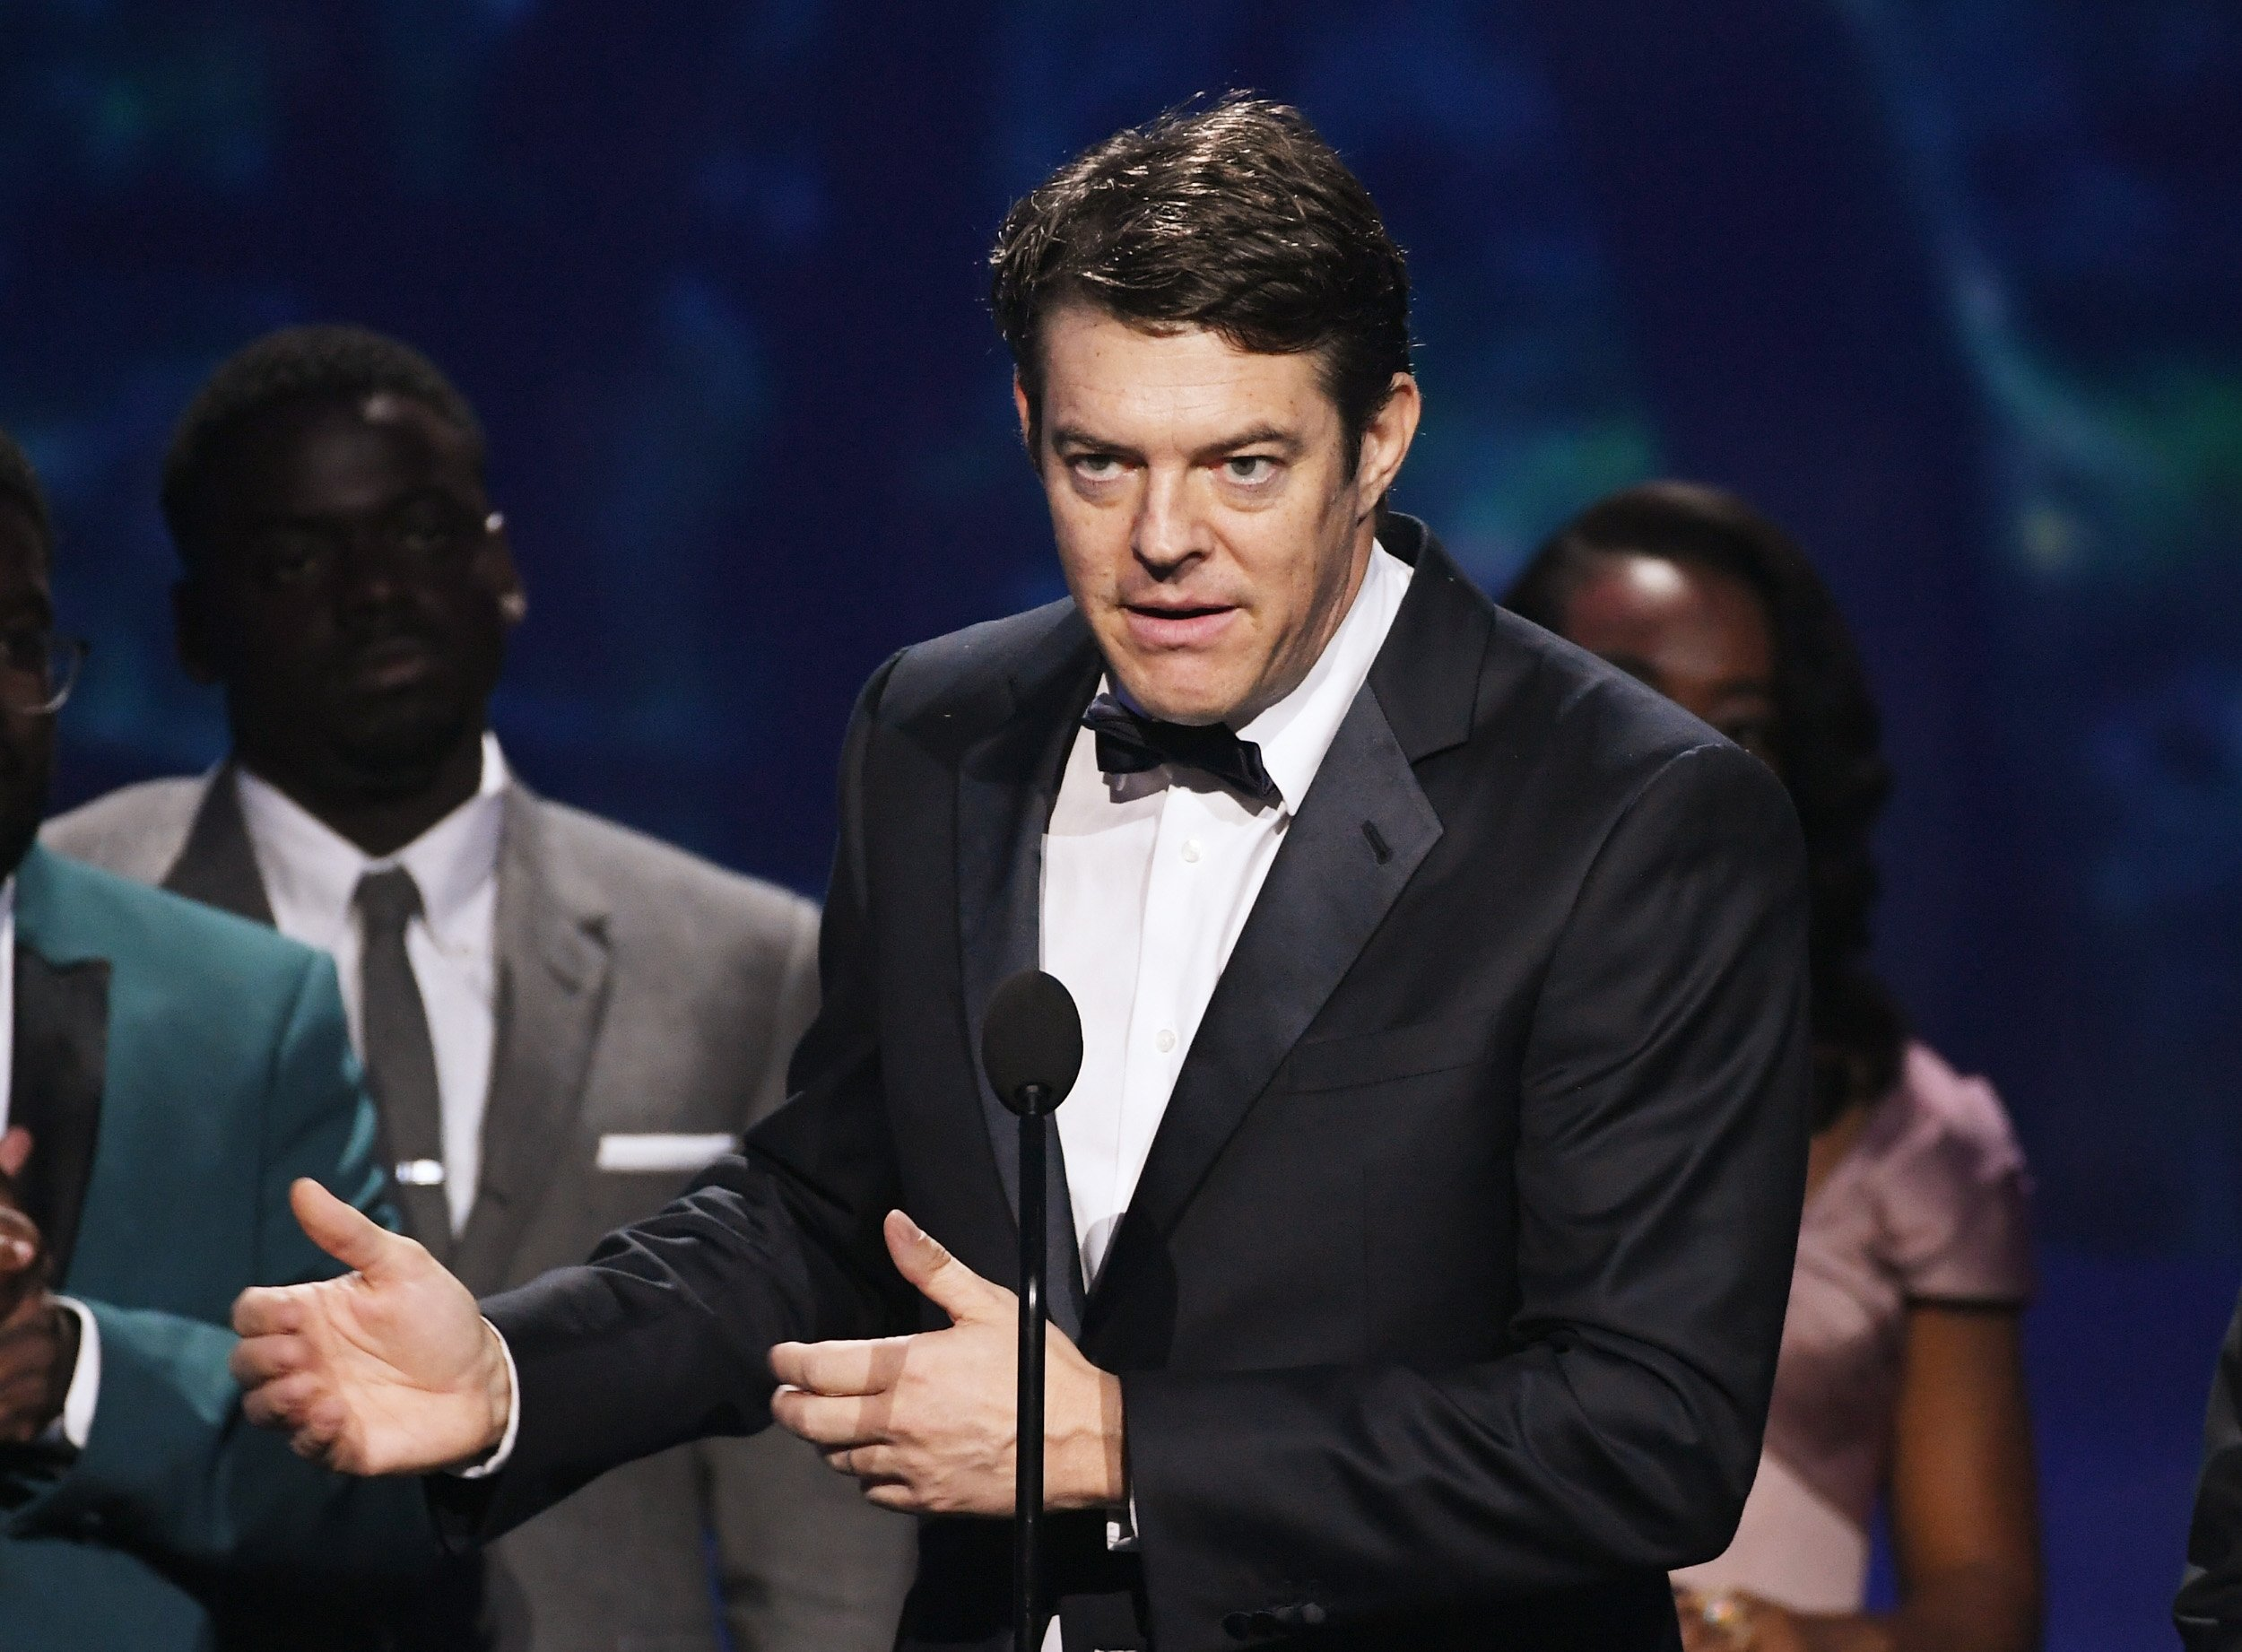 Into the Dark': Jason Blum on His New Hulu Series, 'Get Out